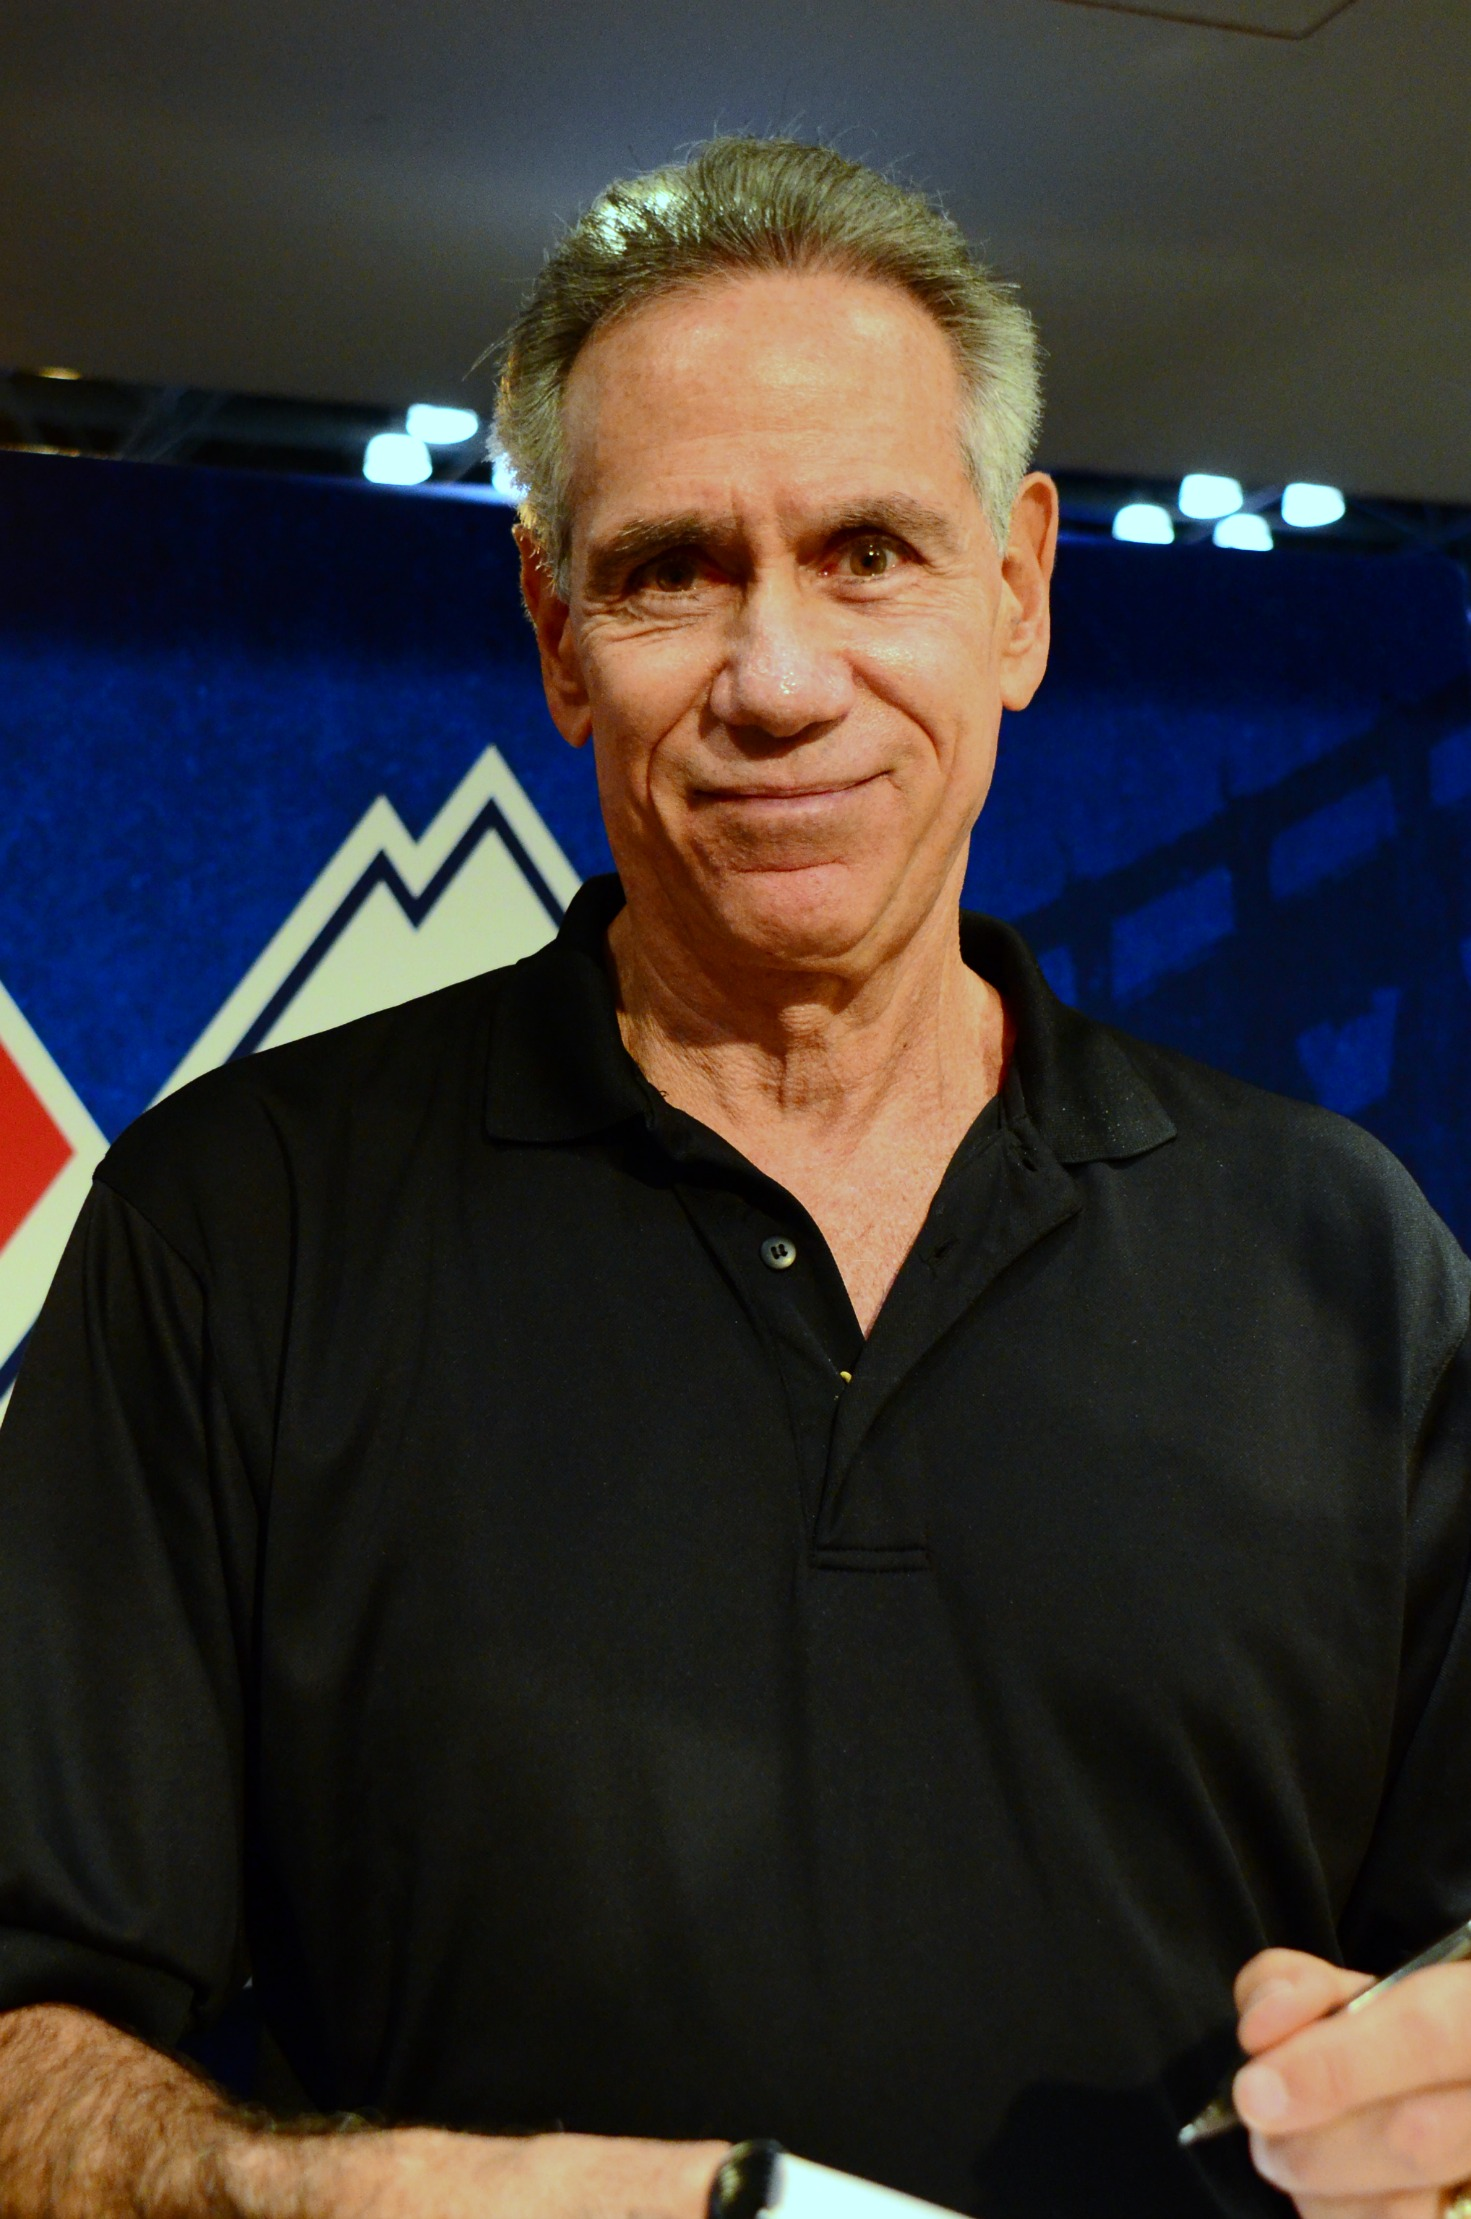 Art Shamsky - Played professional baseball for 13 seasons, between 1960 and 1972, eight in the major leagues. Nicknamed Sham and Smasher, the lanky left-handed outfielder/first baseman began his career with the Cincinnati Reds organization and later became a key part of the 1969 world champion Mets offense. In addition to his contributions to the Mets, Shamsky is perhaps best known for his four consecutive home runs in August 1966 while he was with Cincinnati. He is one of 17 players to hit four straight homers over a span of two games and the only major leaguer to hit three home runs in a game without being in the starting lineup.